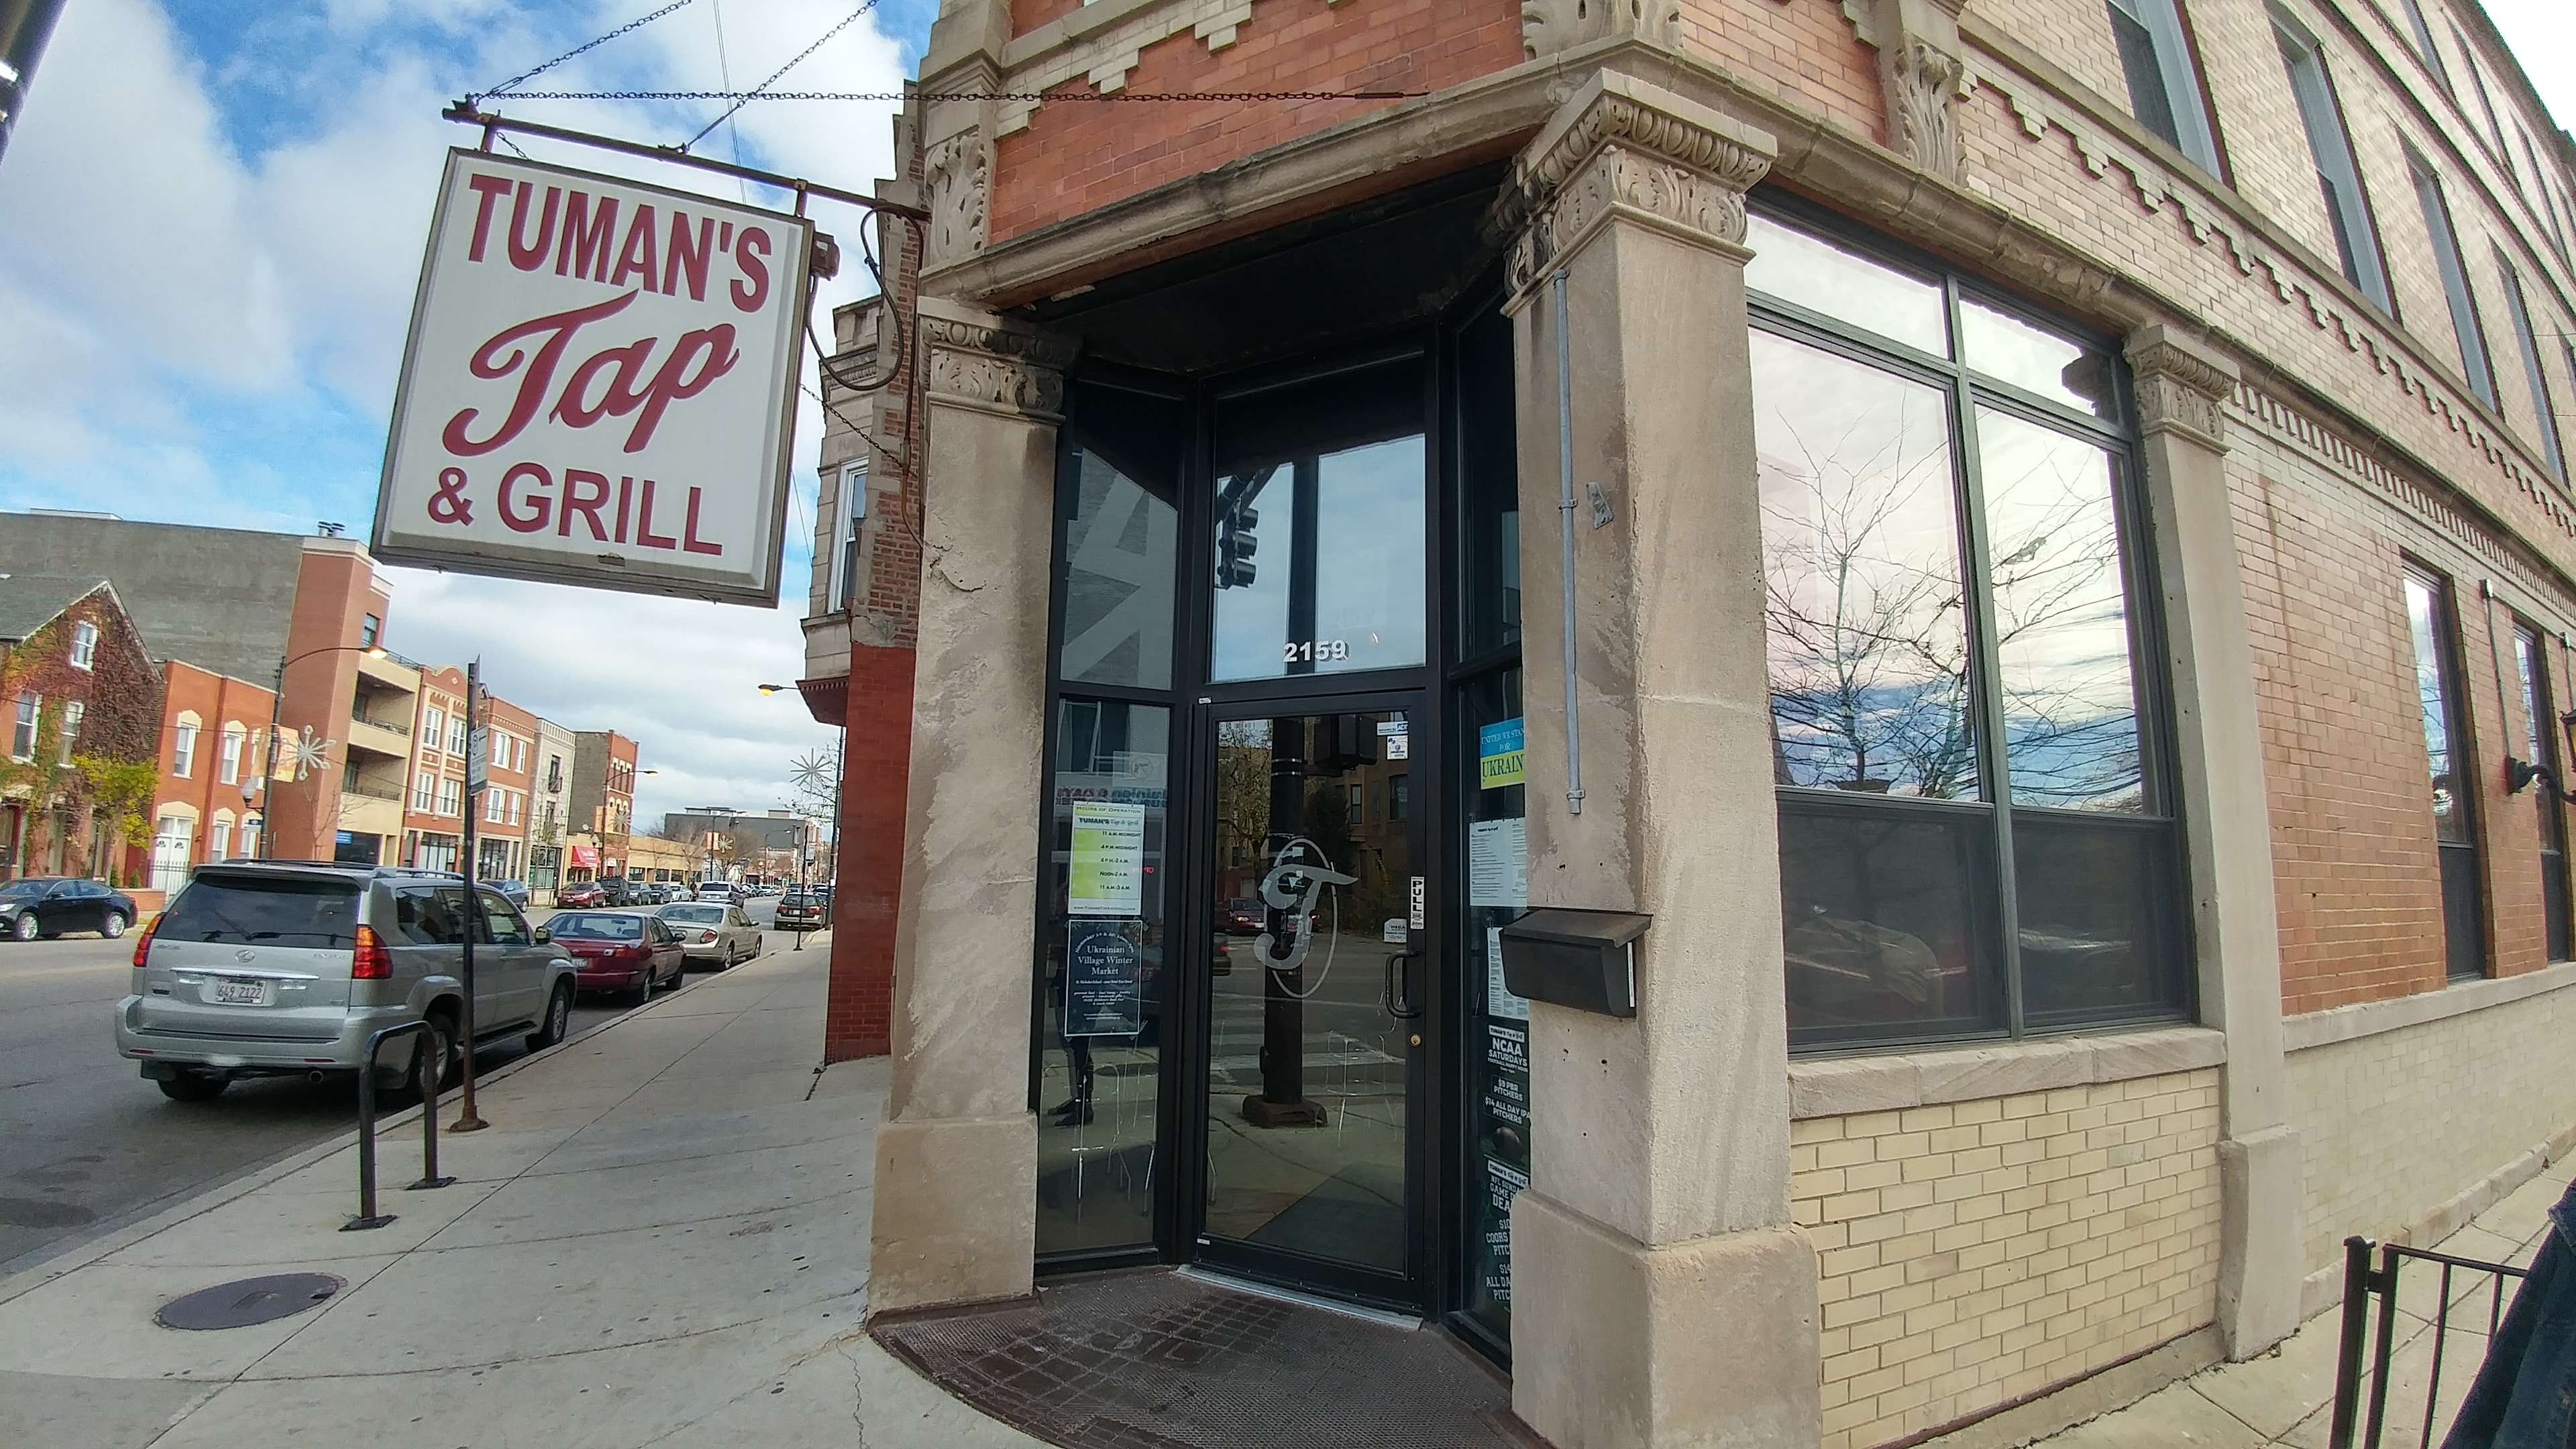 Tuman's Tap and Grill